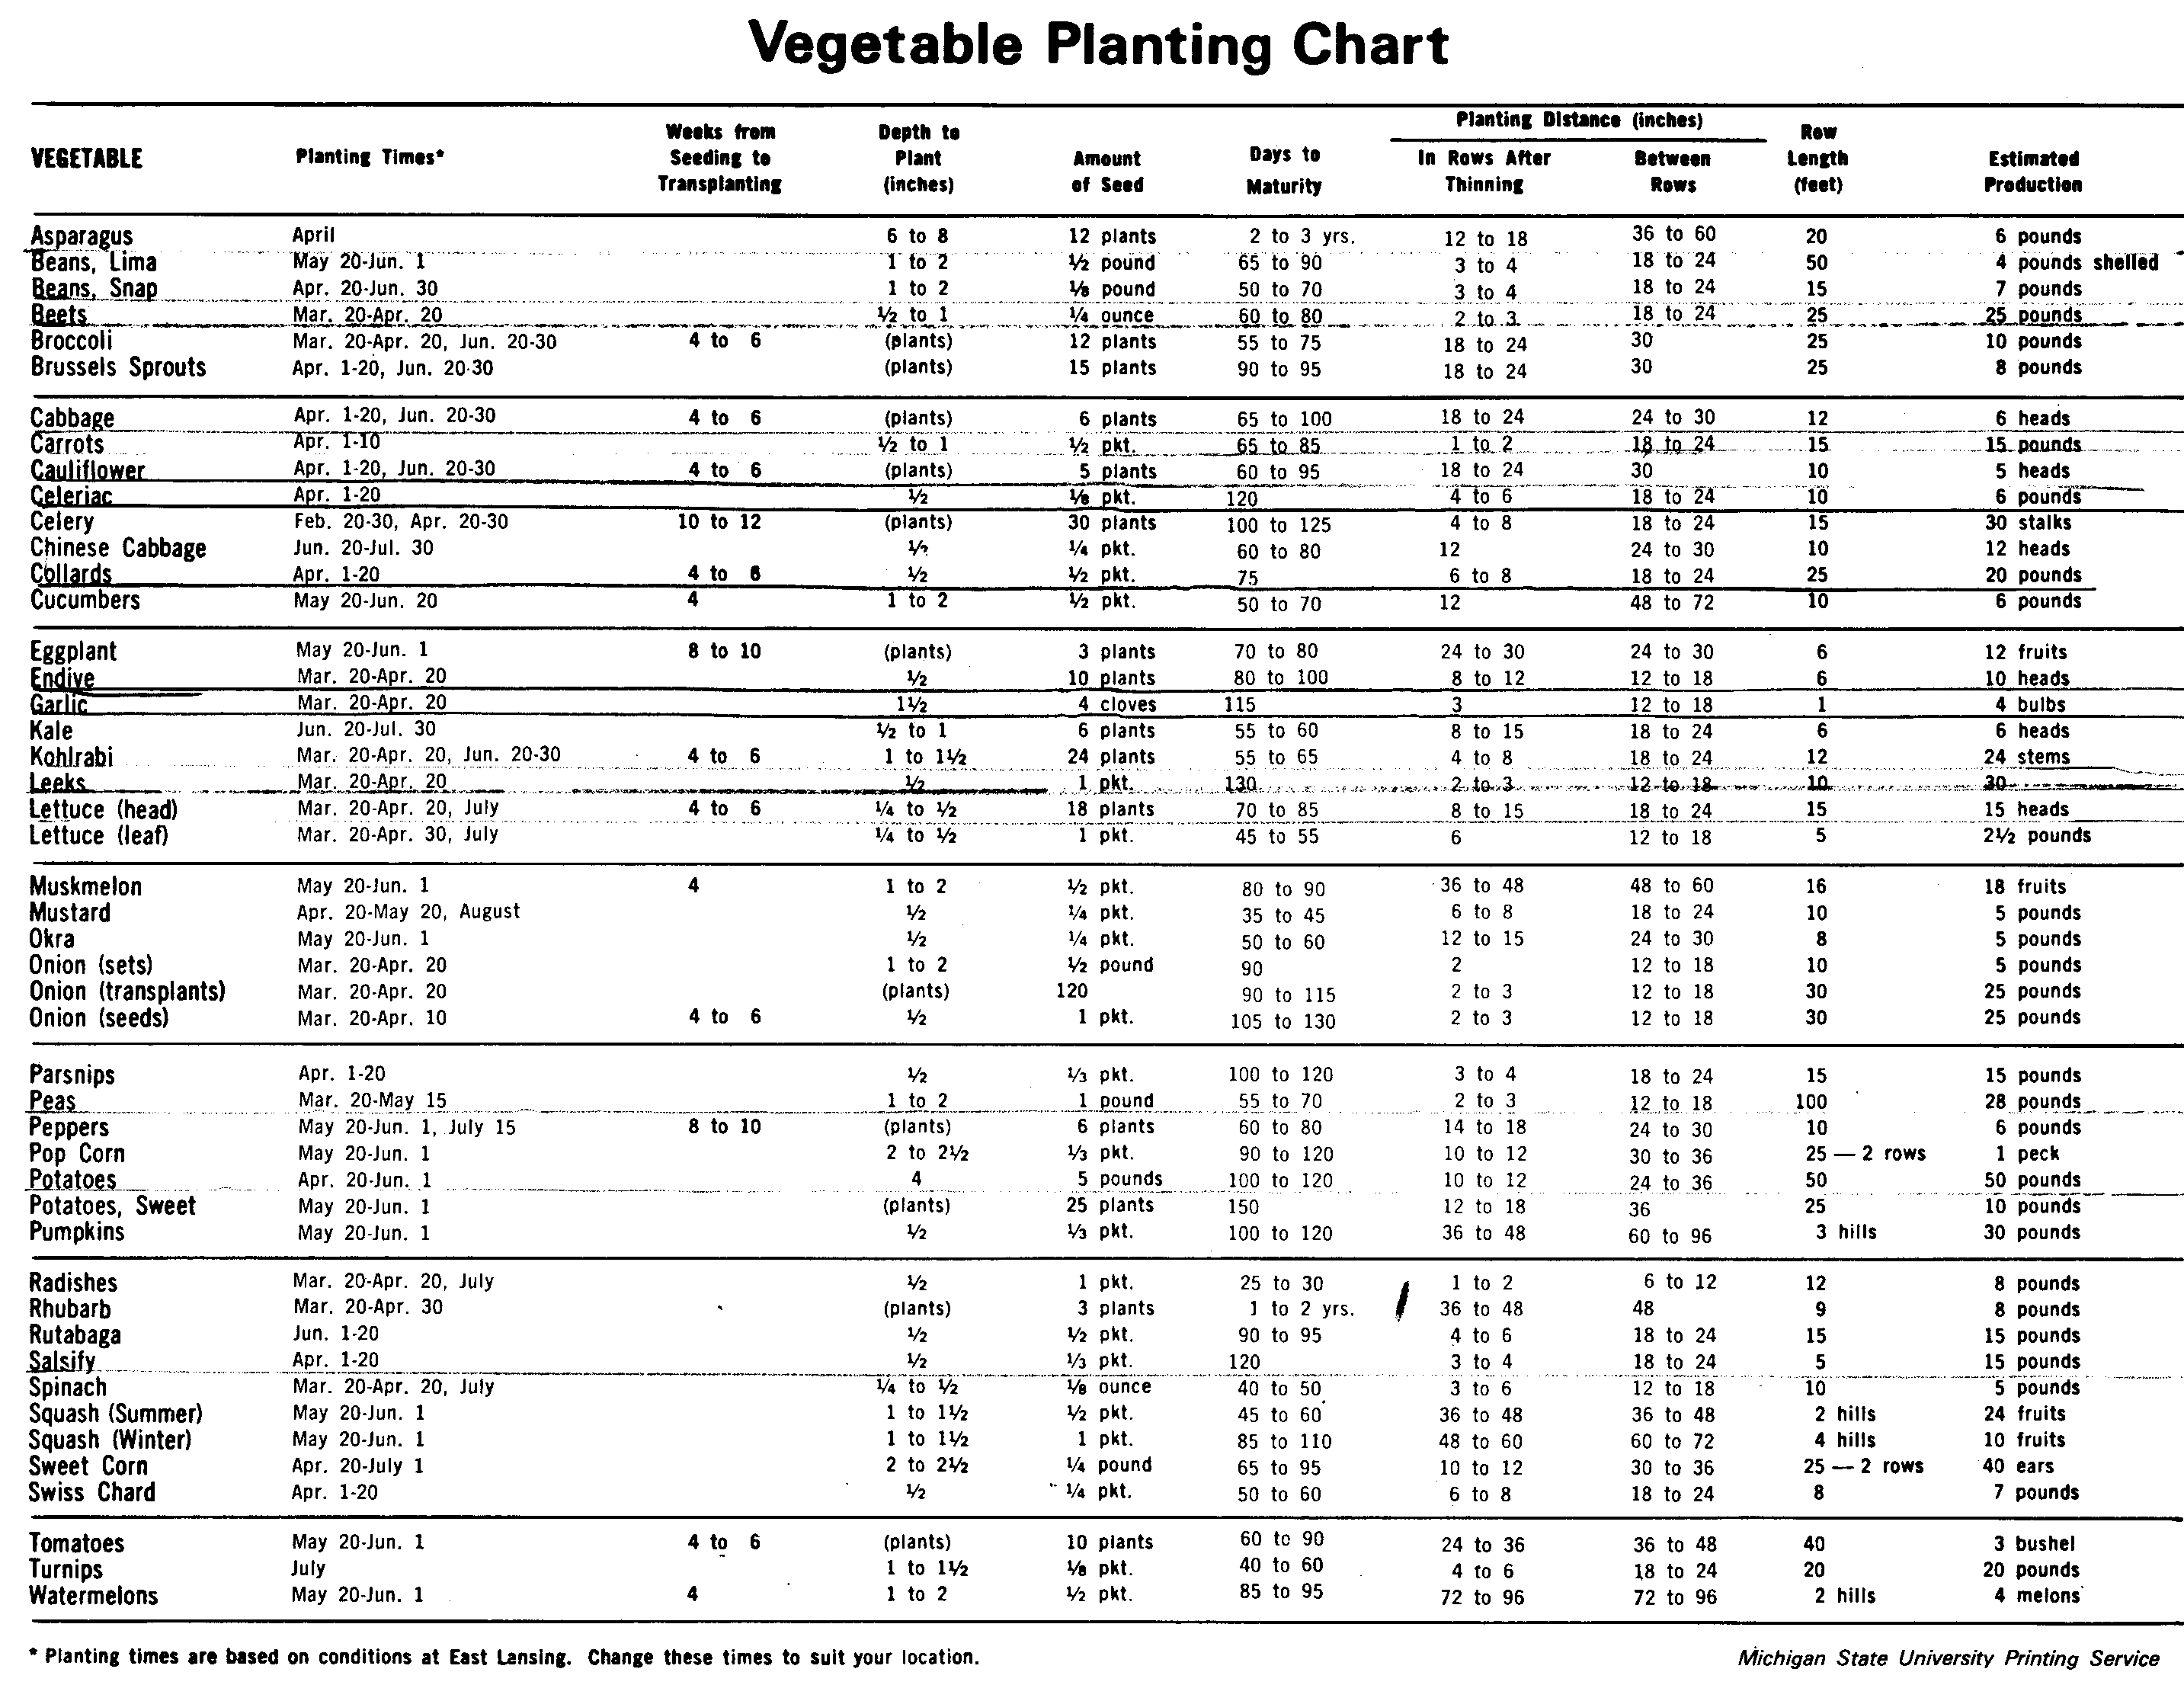 Merveilleux Planting Chart For Vegetable Garden Michigan | This Is A Handy Chart To  Help Determine Seeding